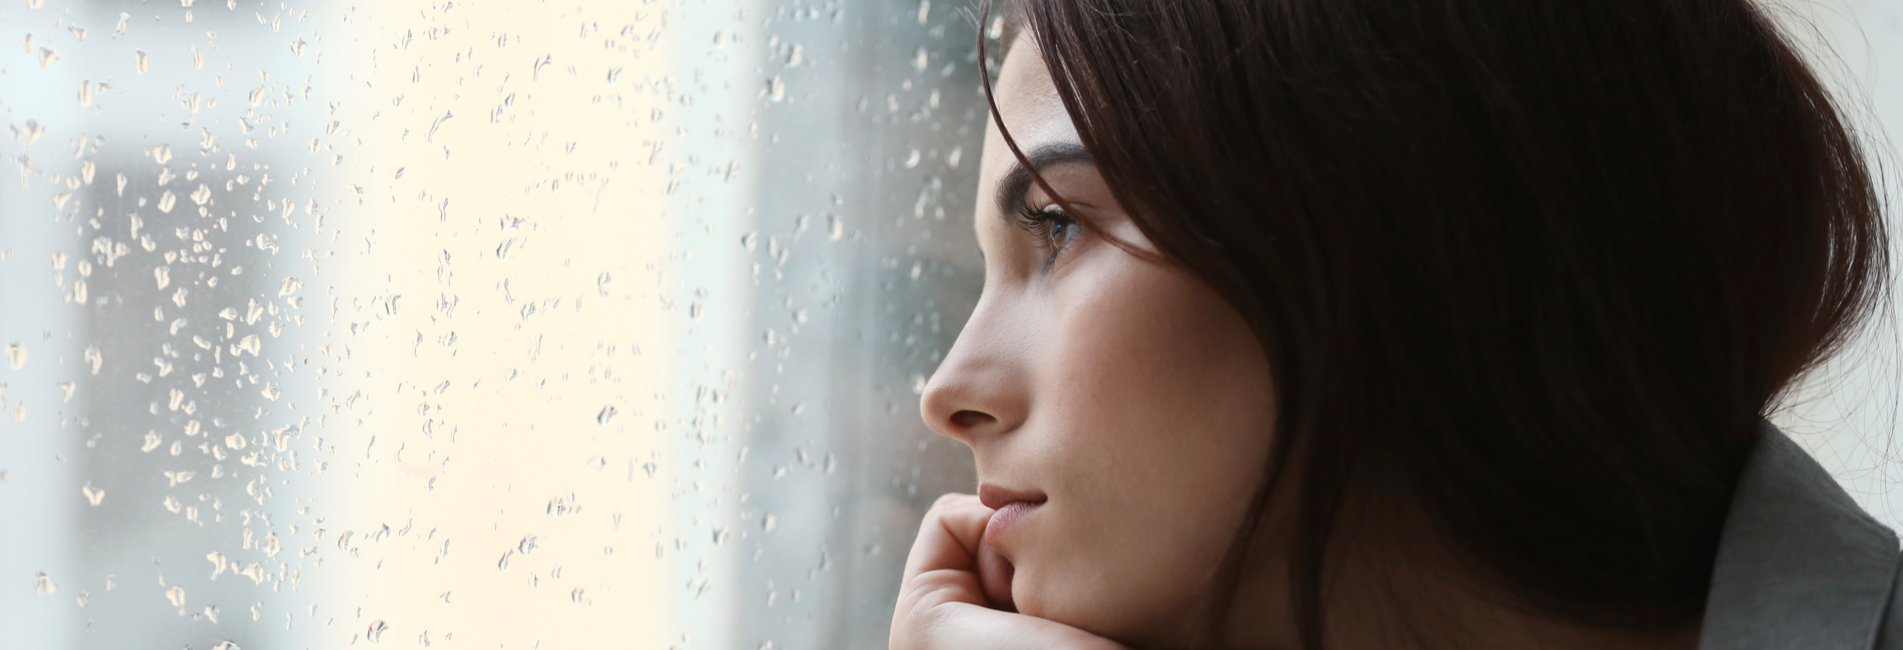 Reasons to Stay Sober in Difficult Times Resurgence - Because of the many reasons as to why it is important to stay sober during difficult times, you can see that this woman has become incredibly depressed after relapsing during tough times to her alcohol and drug addictions